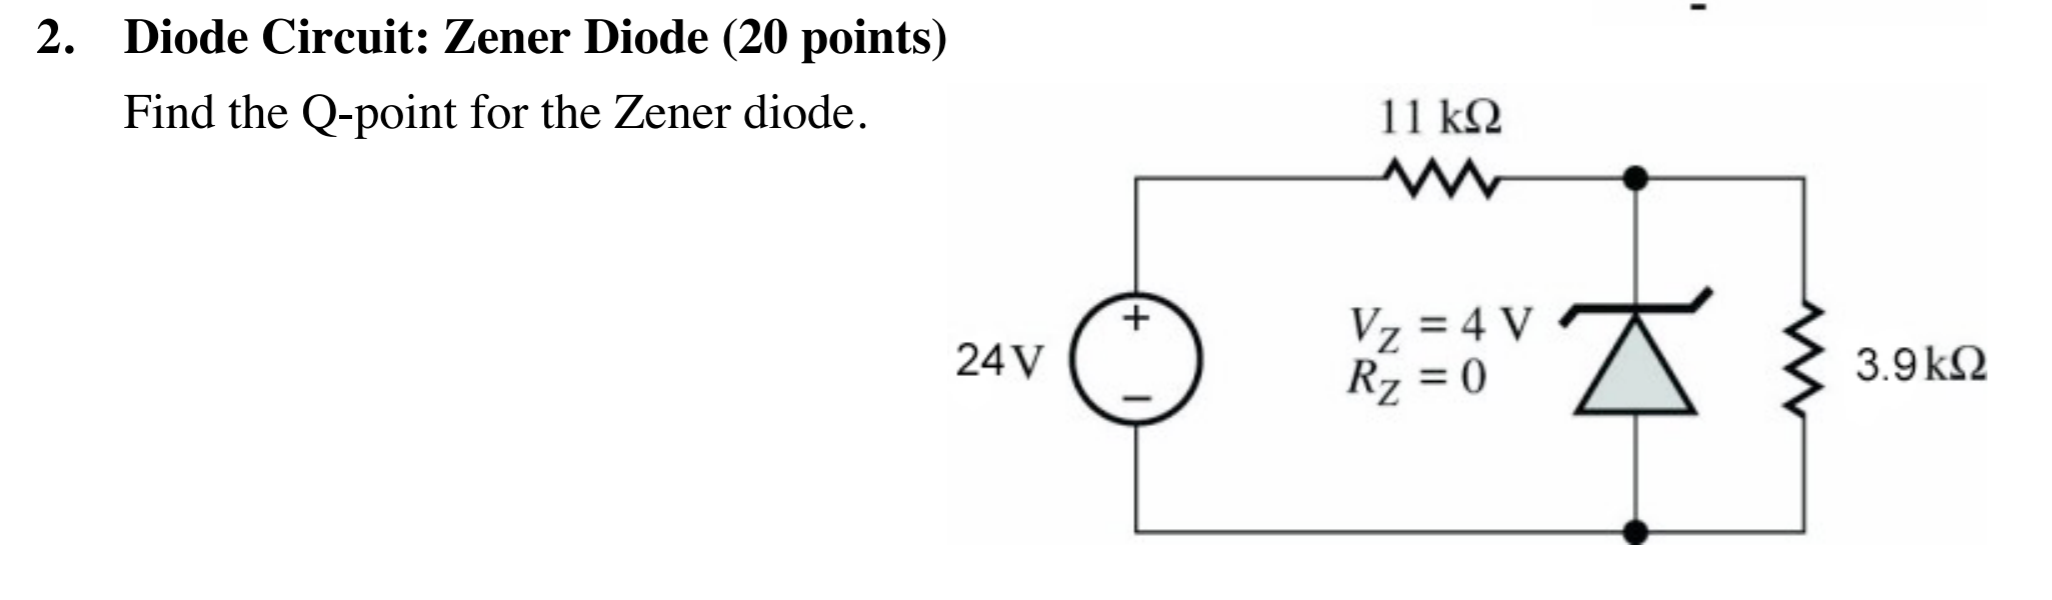 Find the Q-point for the Zener diode.